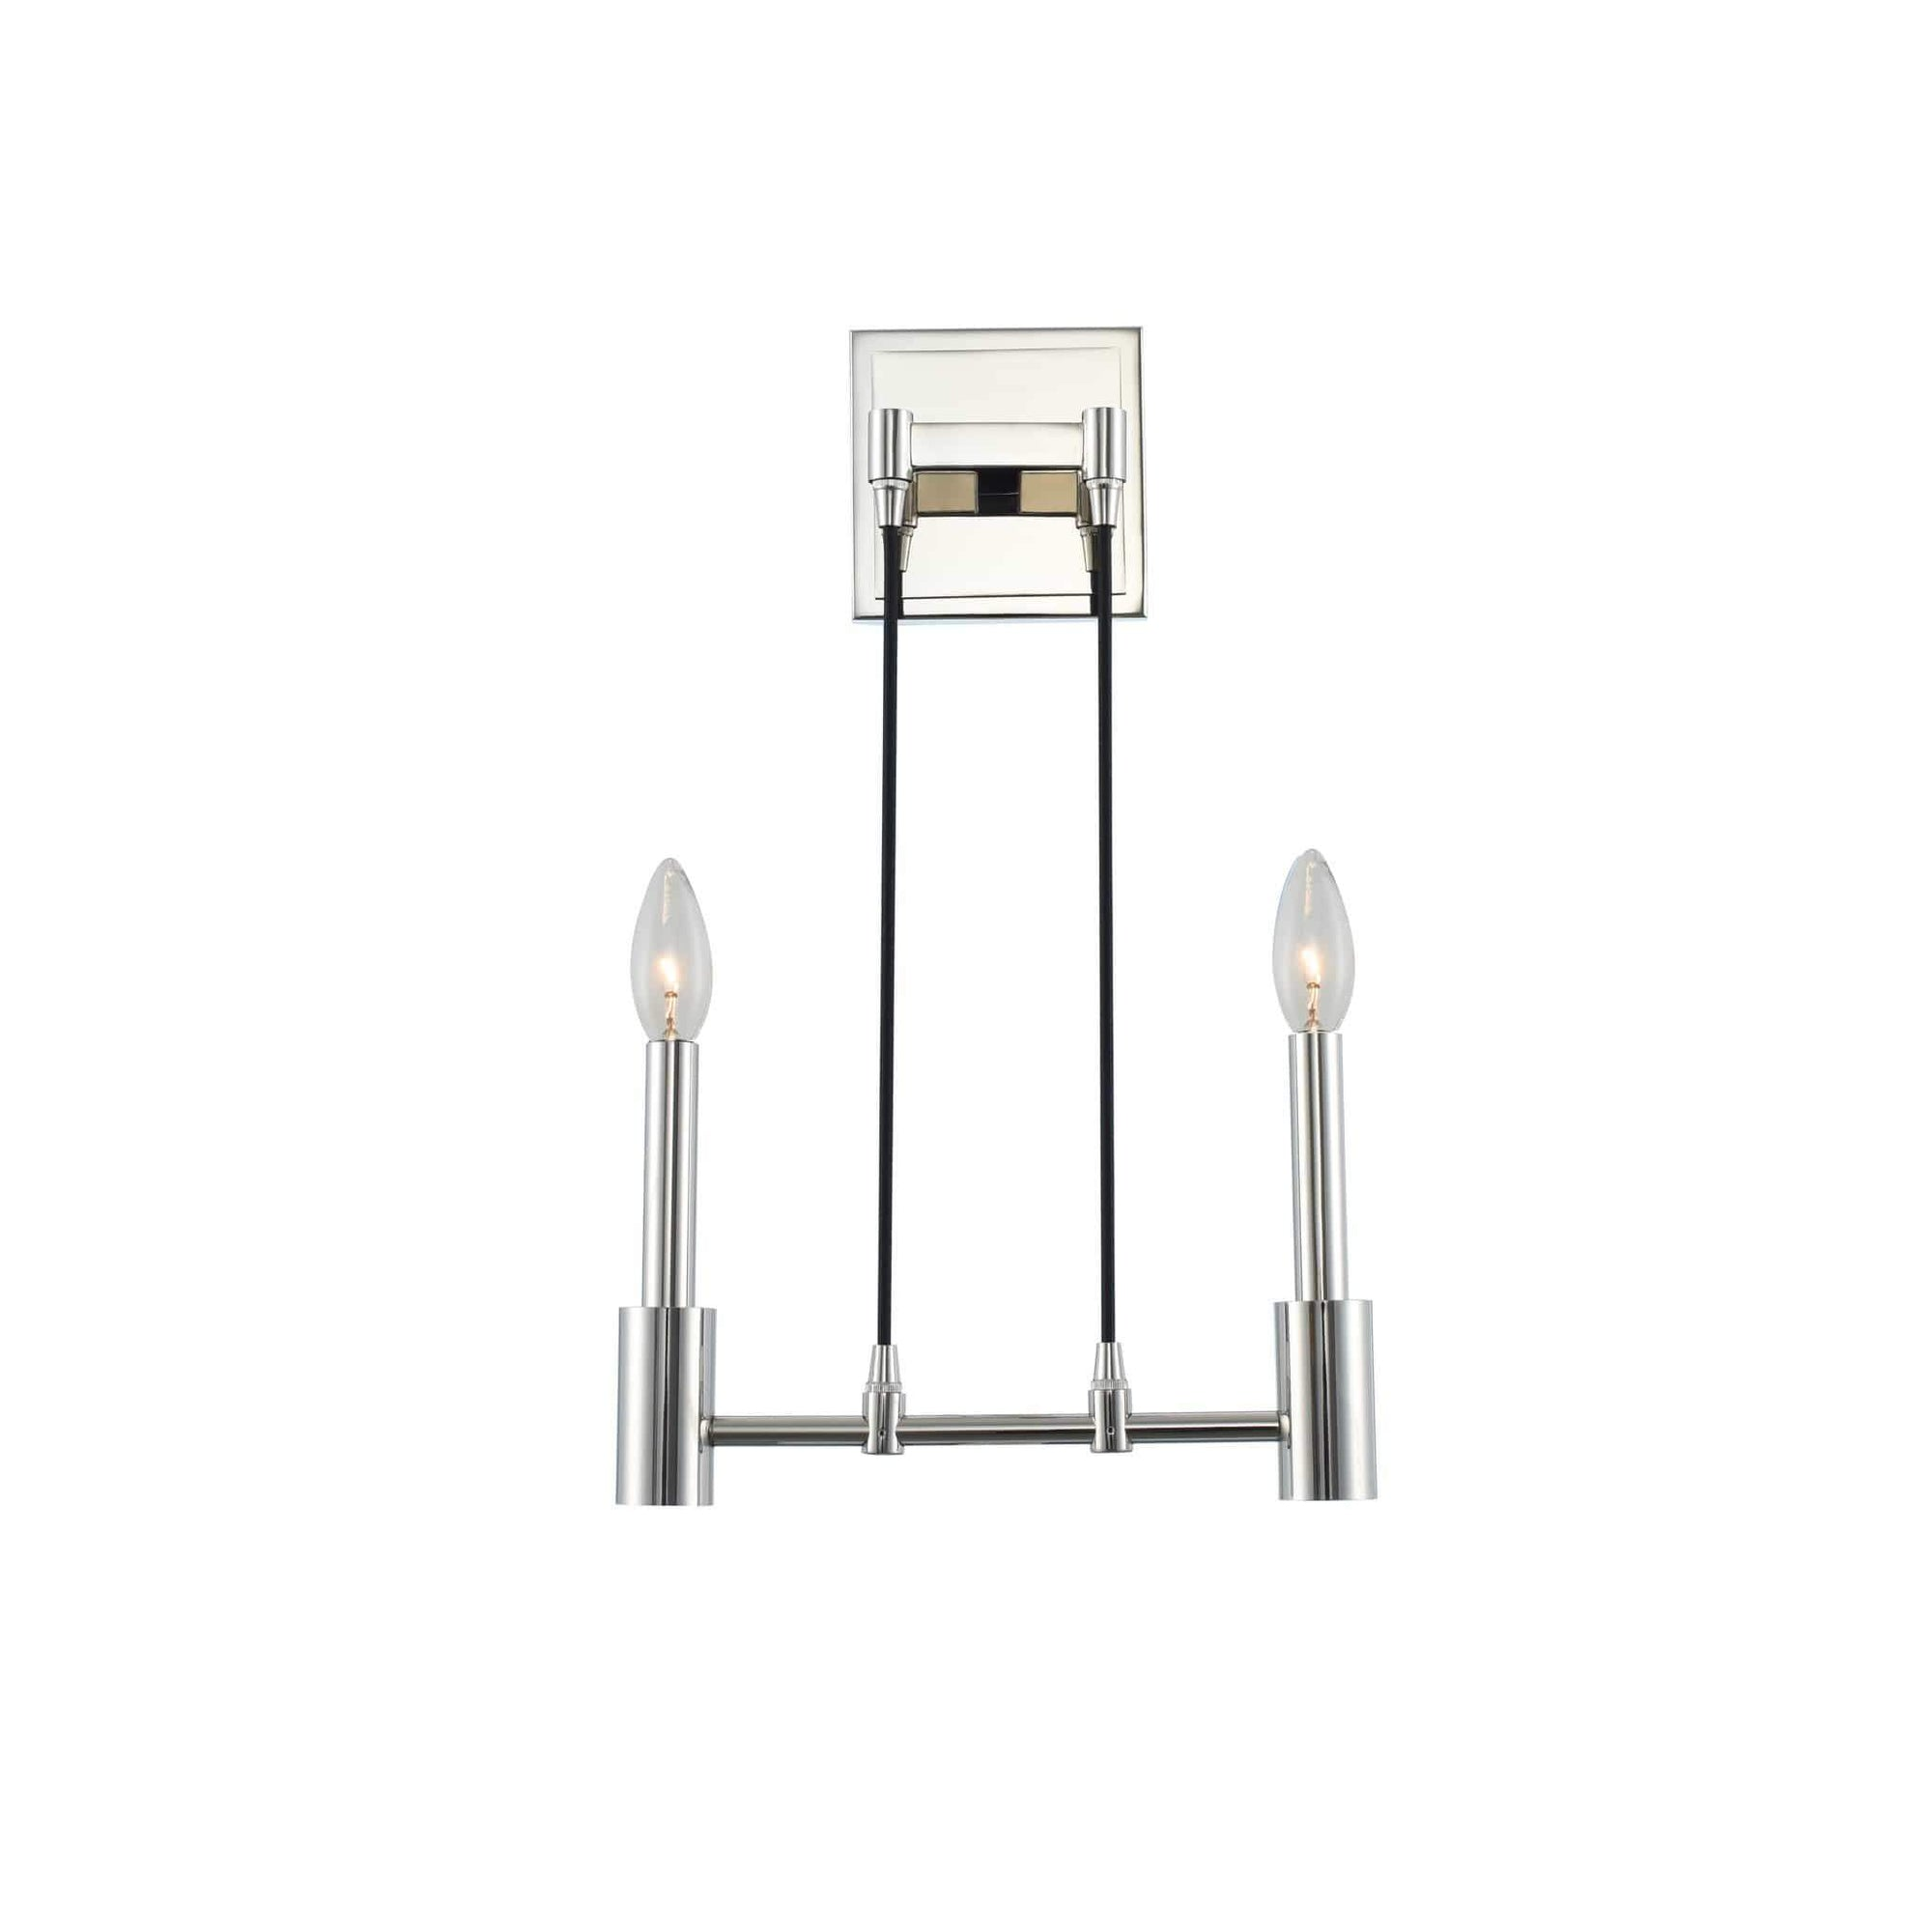 Kalco Lighting Wall Sconces Polished Nickel Kingston 2 Light Ada Wall Sconce By Kalco Lighting 509820